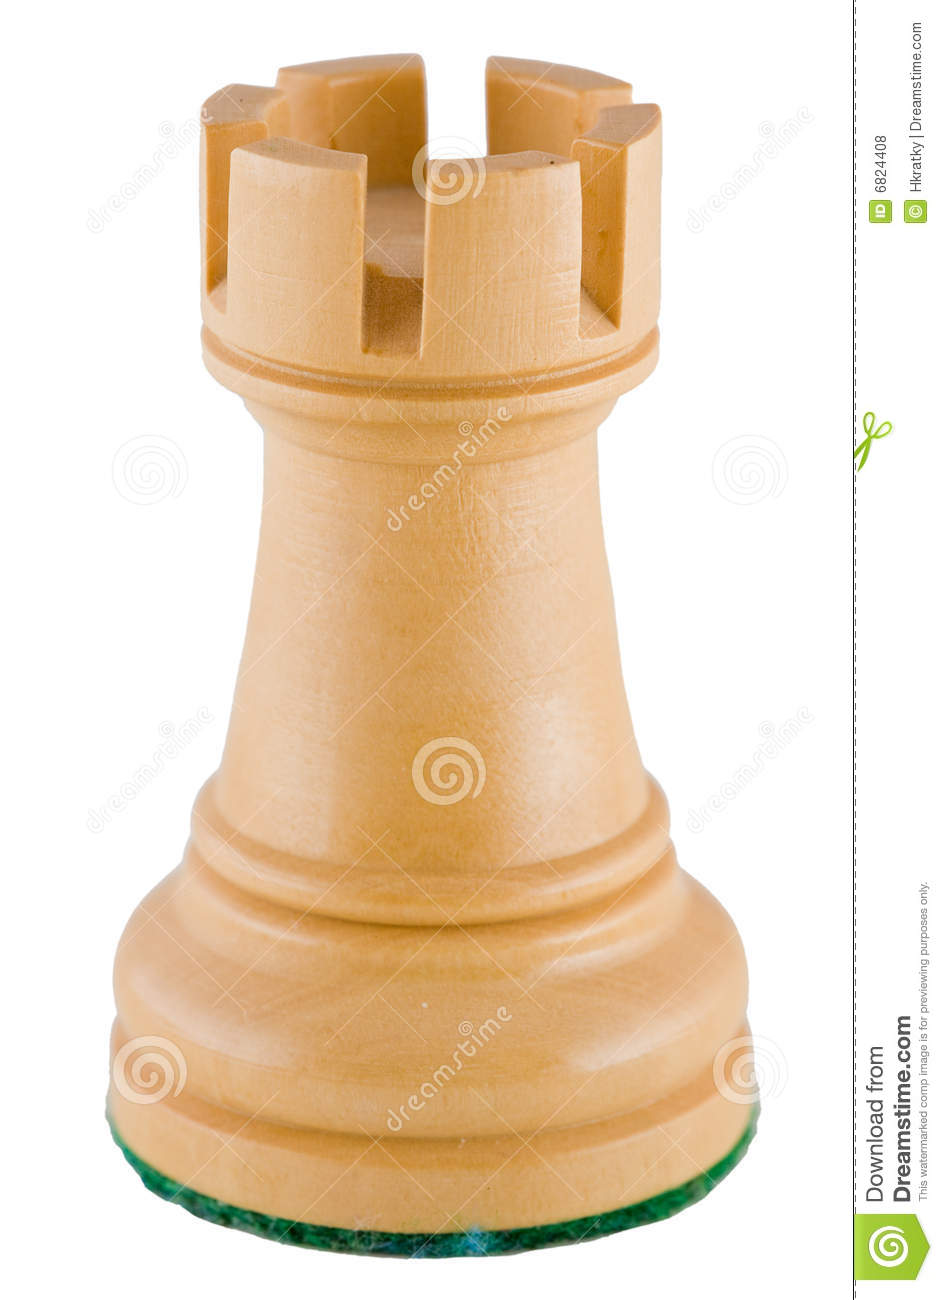 Chess piece - white rook stock photo. Image of defense - 6824408